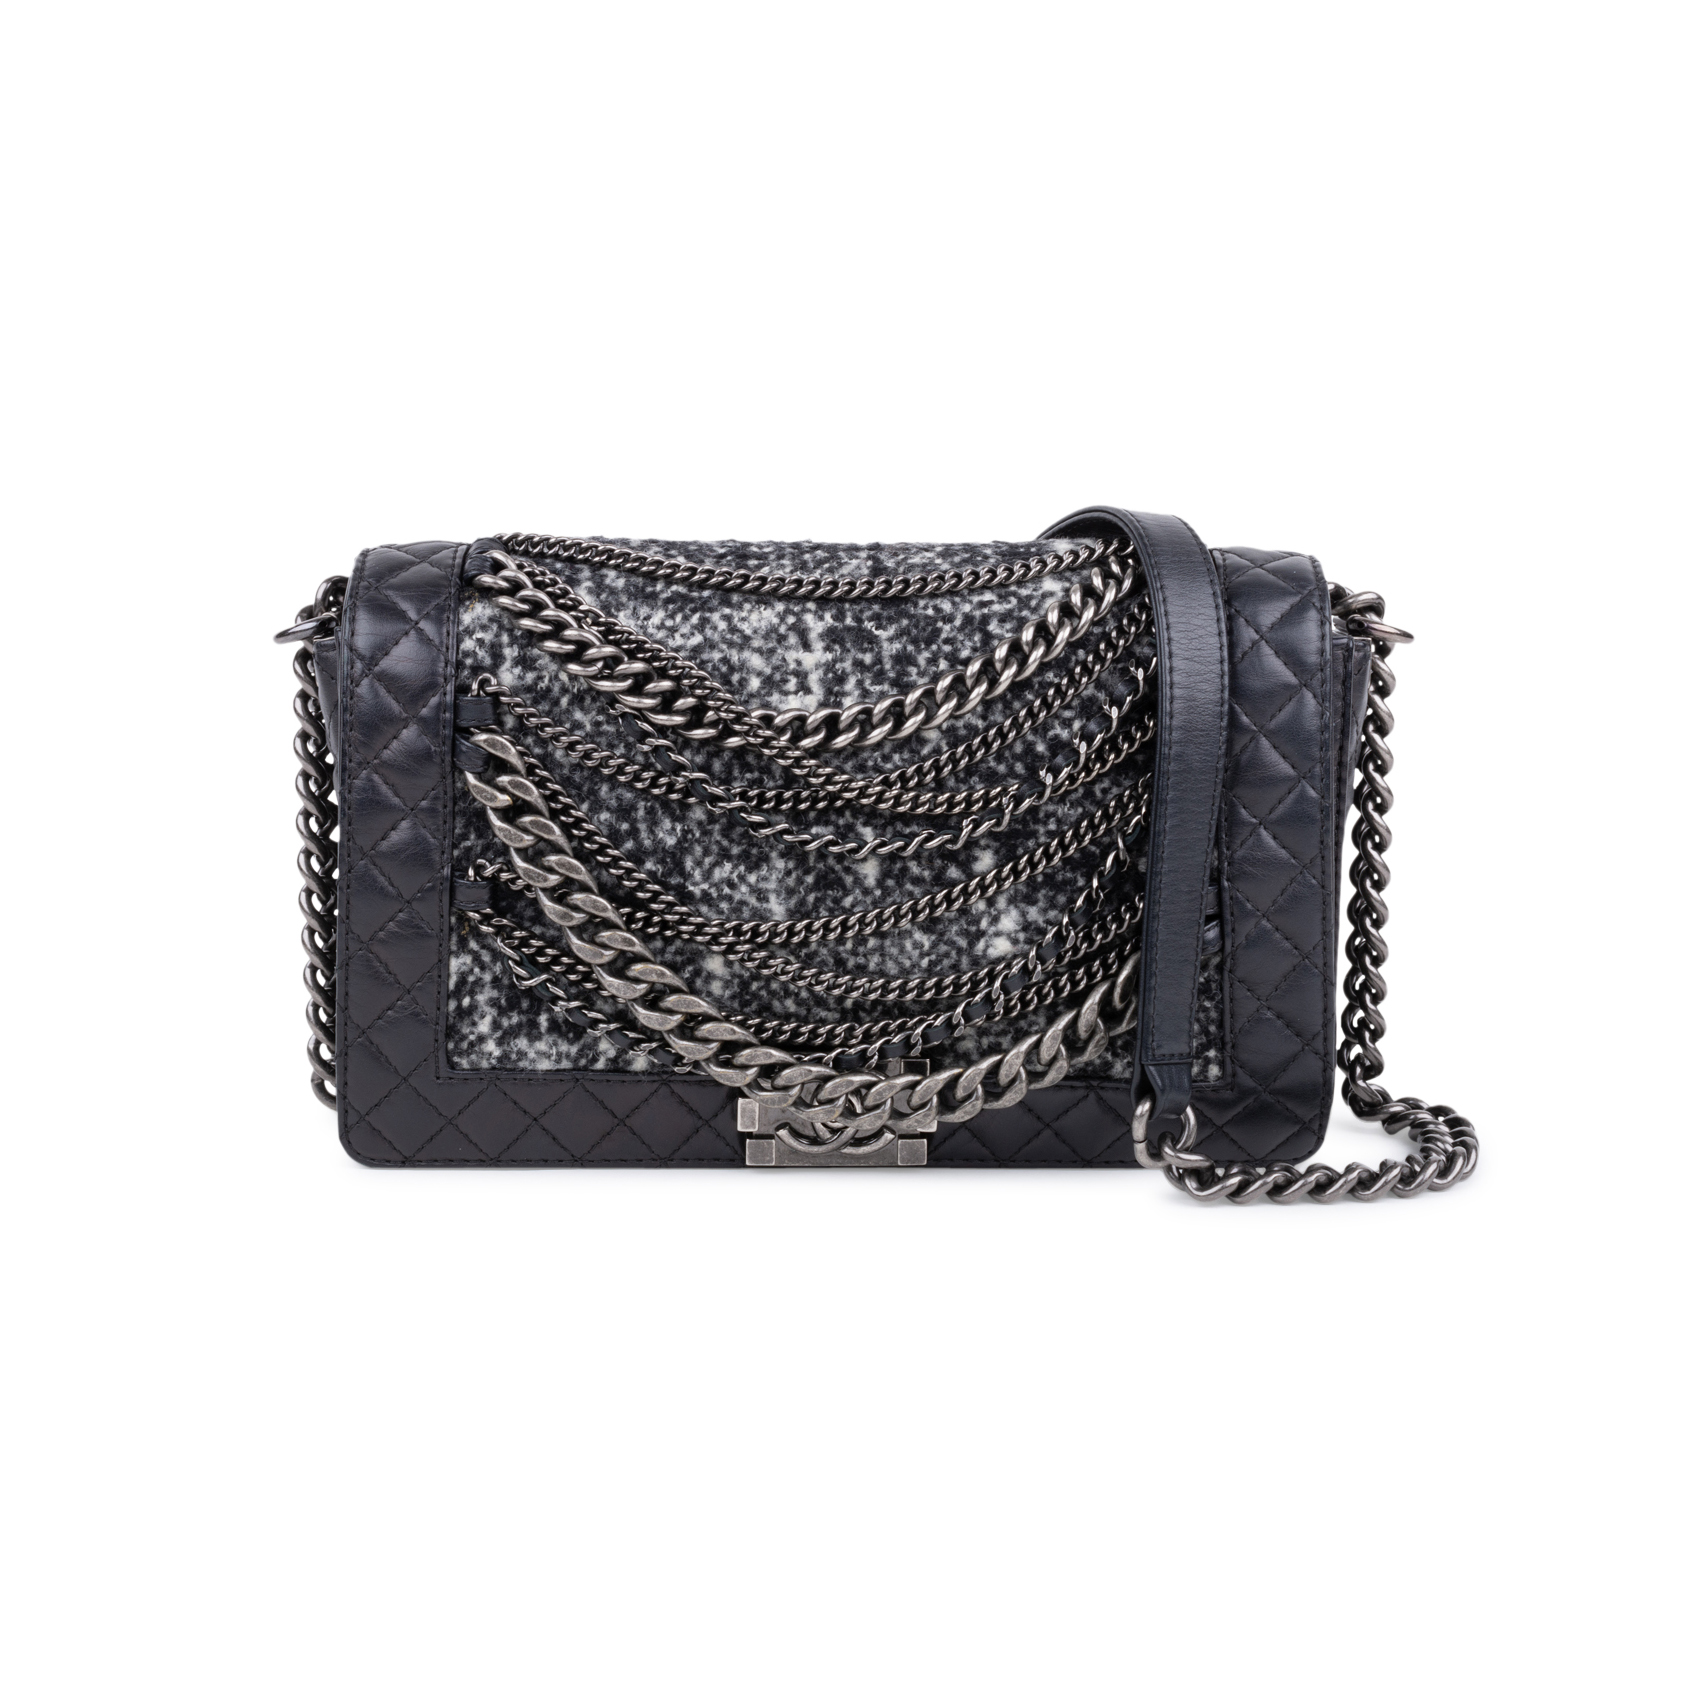 be1157660bcb Authentic Second Hand Chanel Enchained Boy Bag (PSS-597-00006)